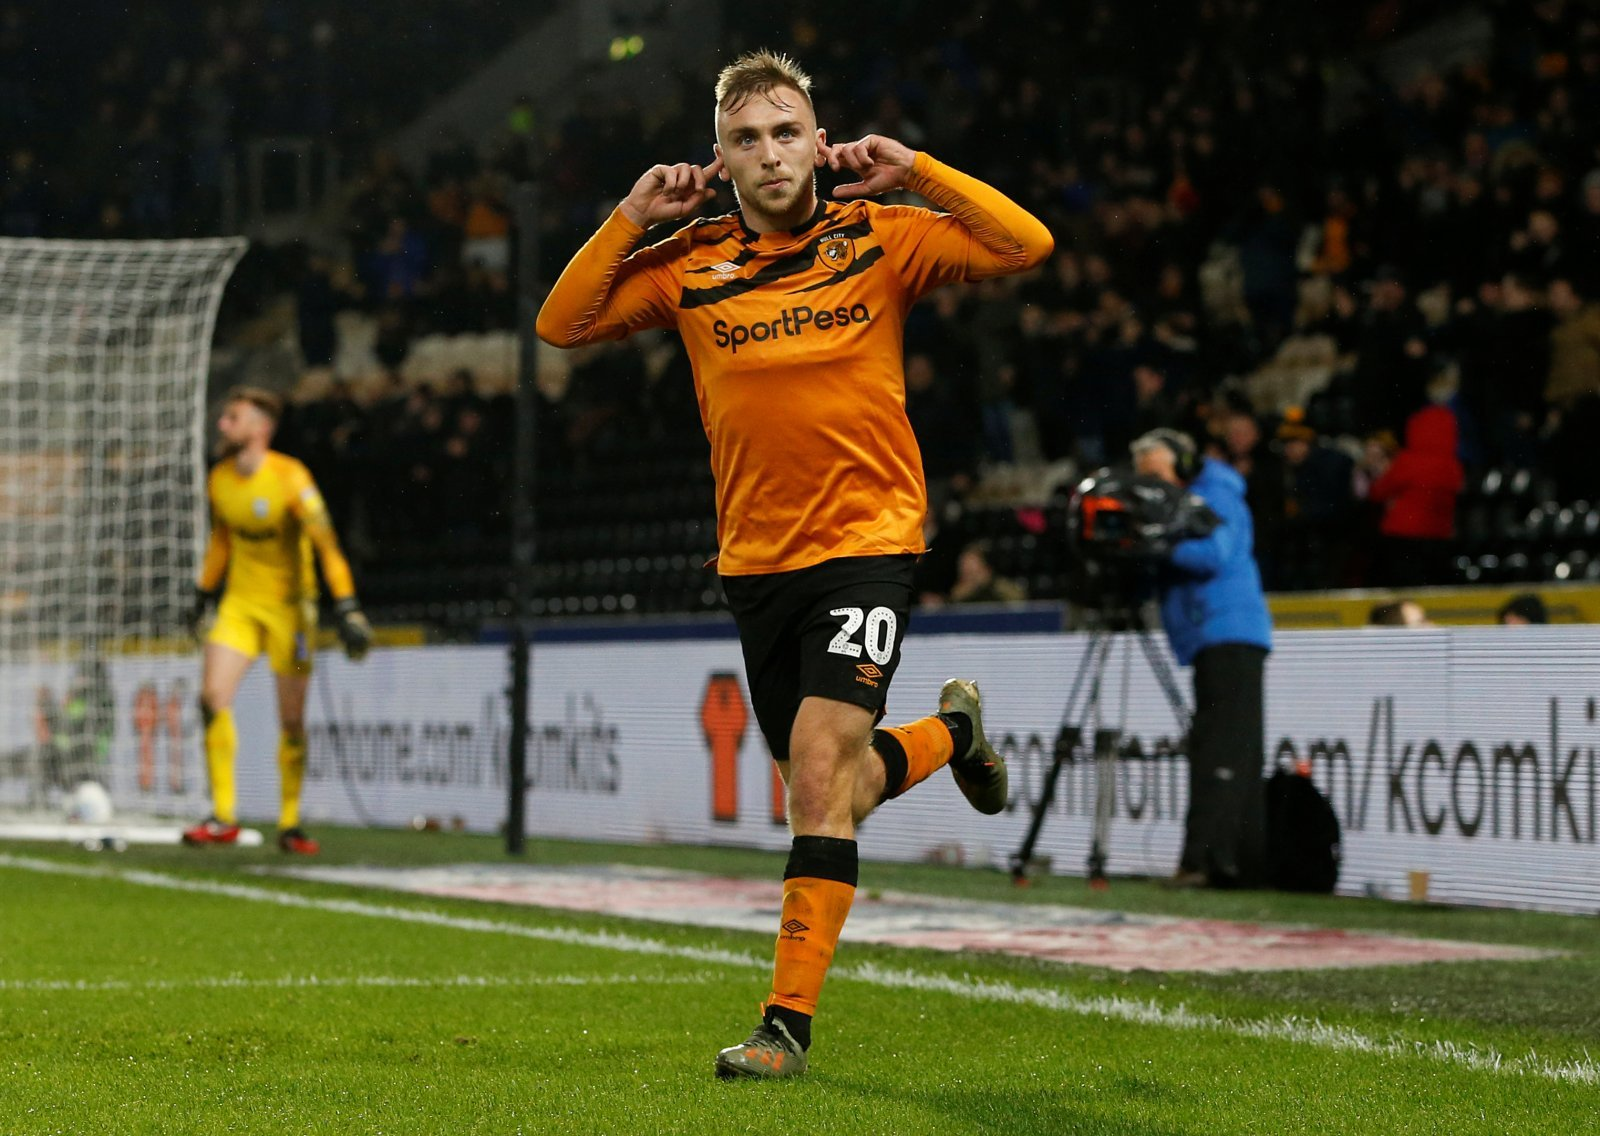 Please don't go', 'Welcome' - Hull City's Jarrod Bowen message has sparked  a reaction with these fans | Football League World